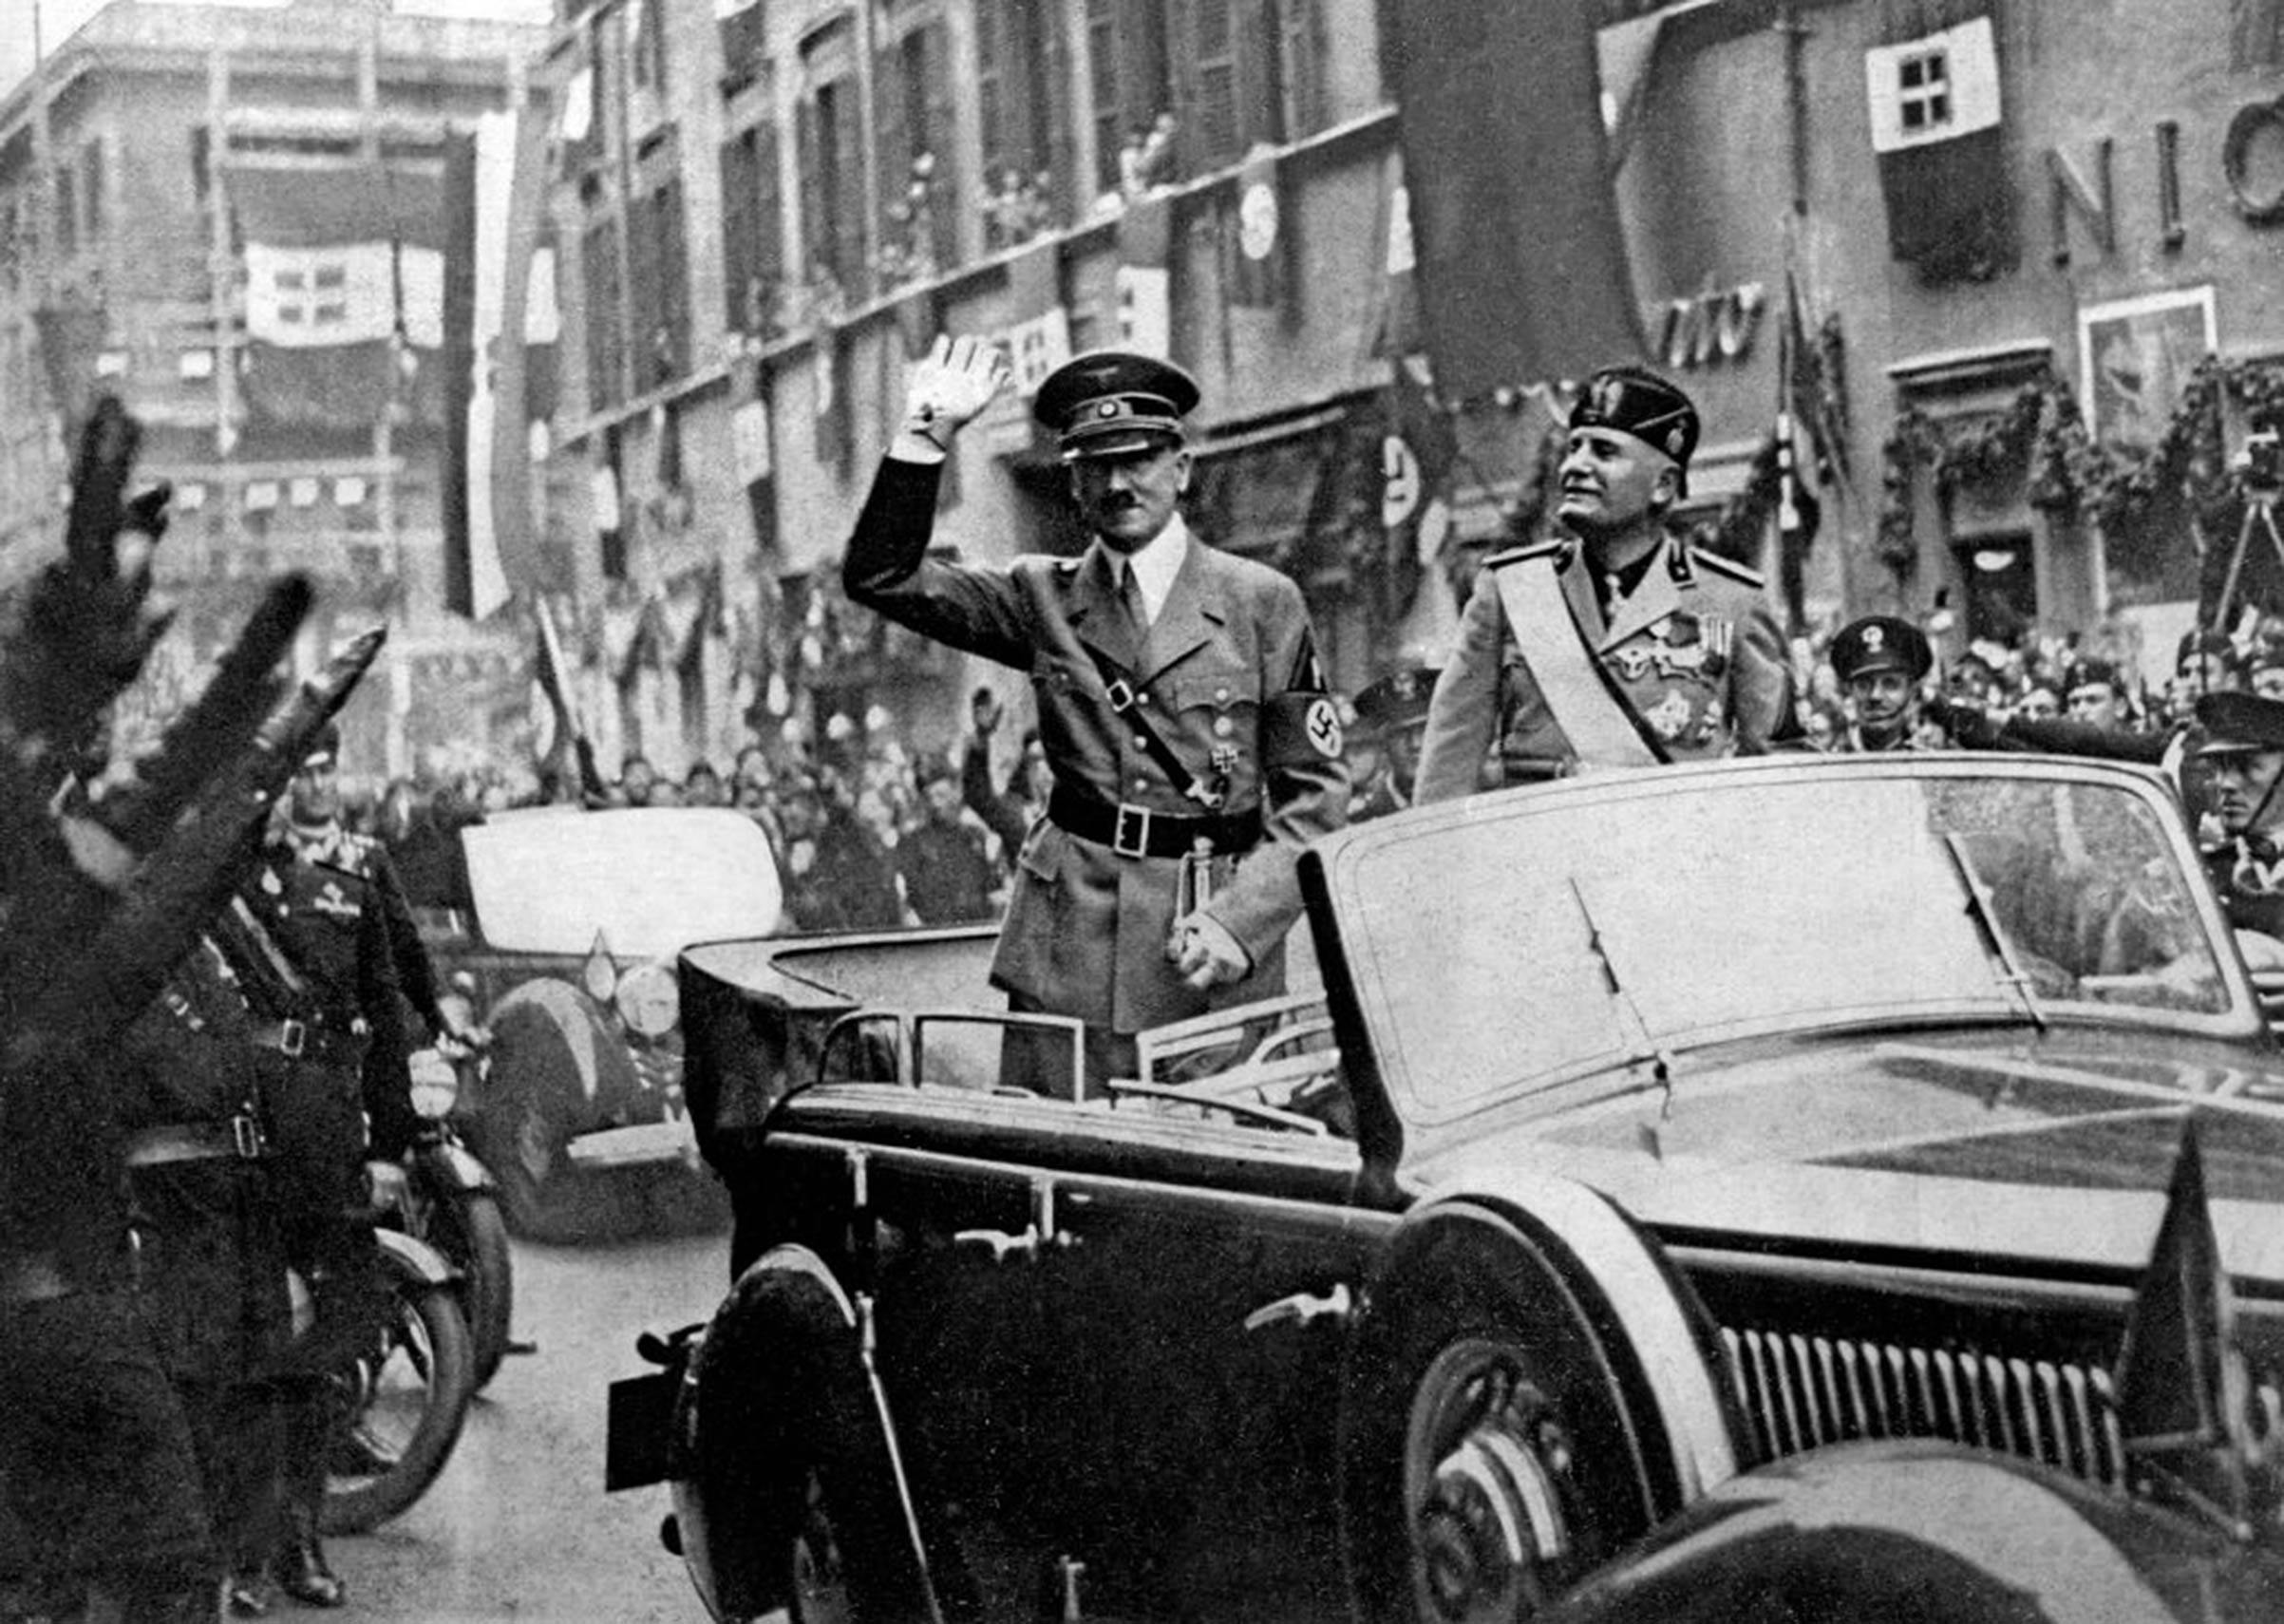 Adolf Hitler (left) and Benito Mussolini in a car, saluting the crowd that gathered along the thoroughfare Corso Vittorio Emanuele in Rome, in May 1938.